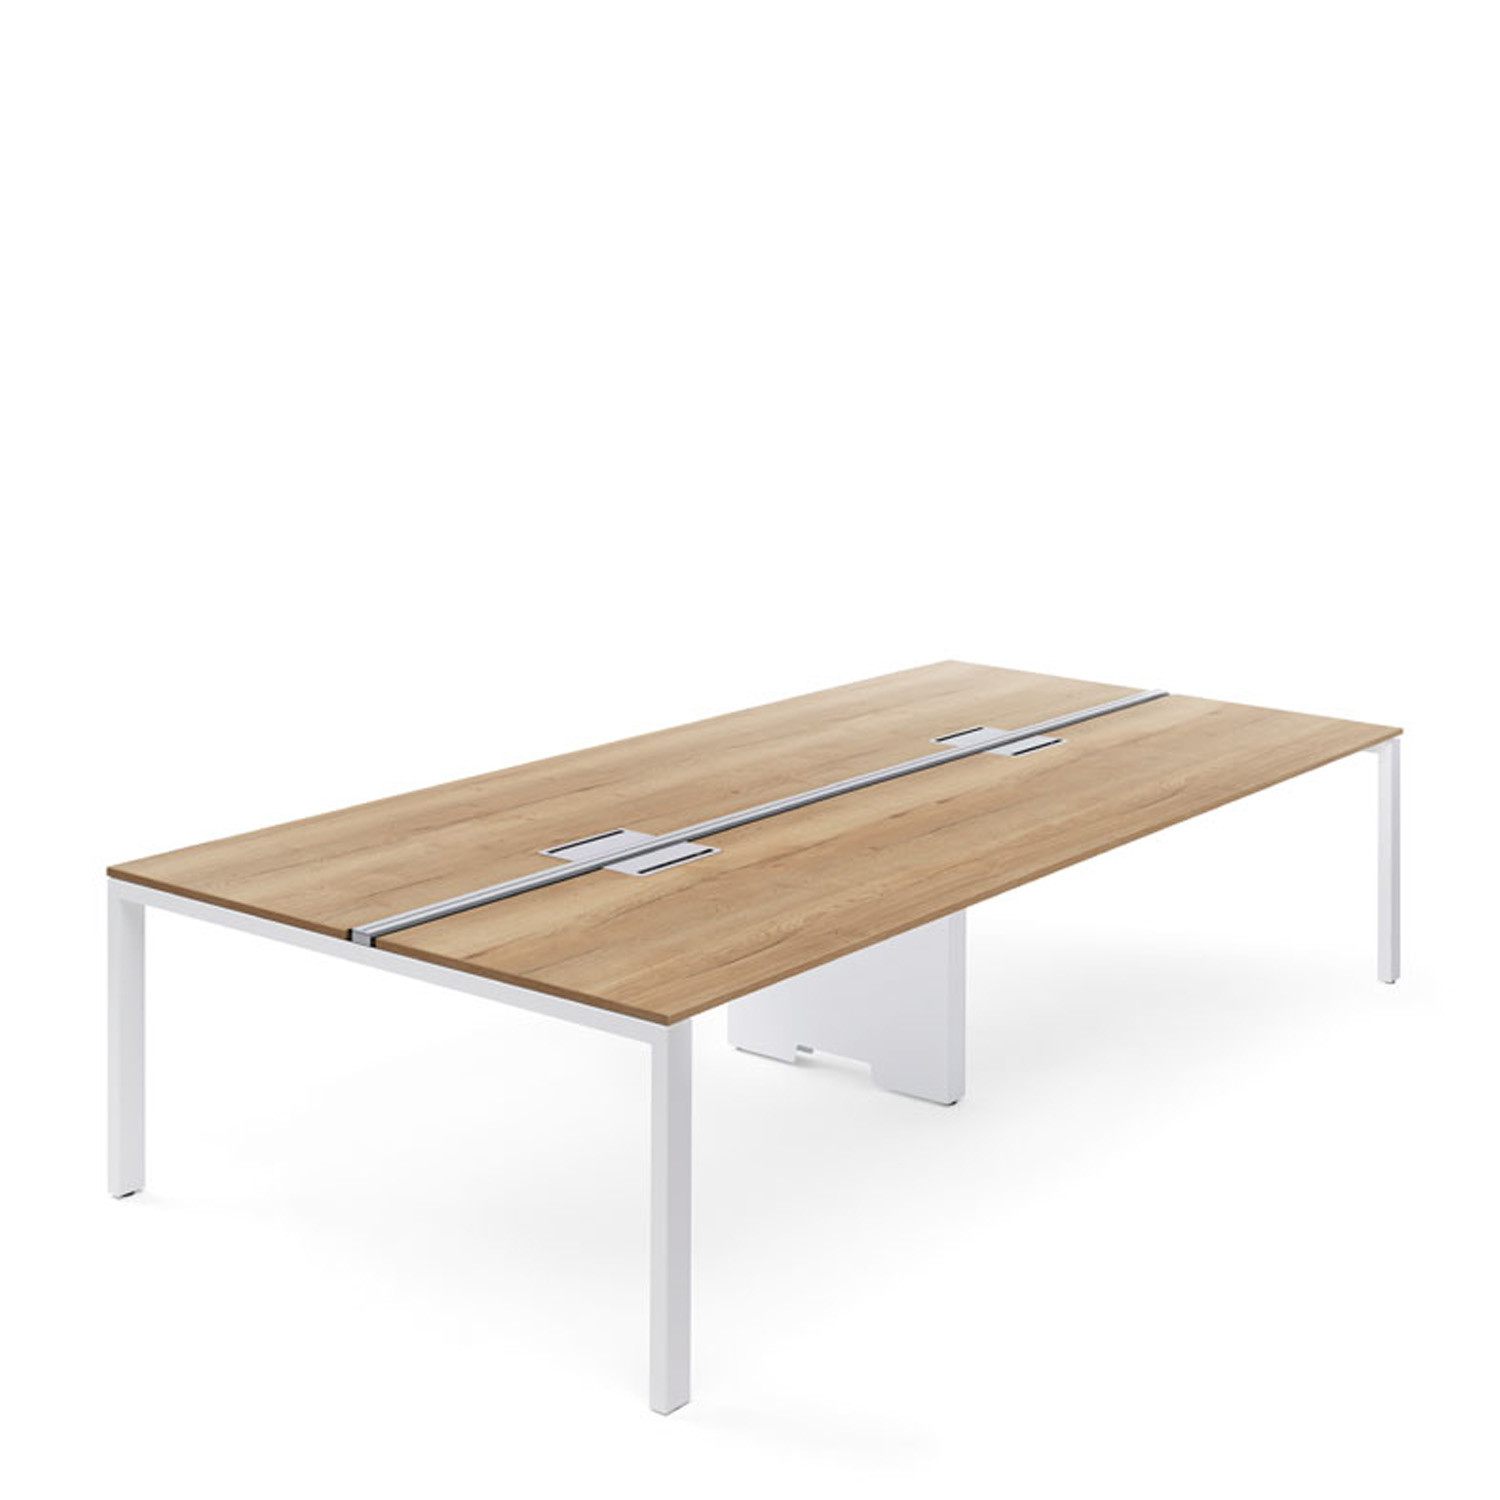 Get Together Bench Desk